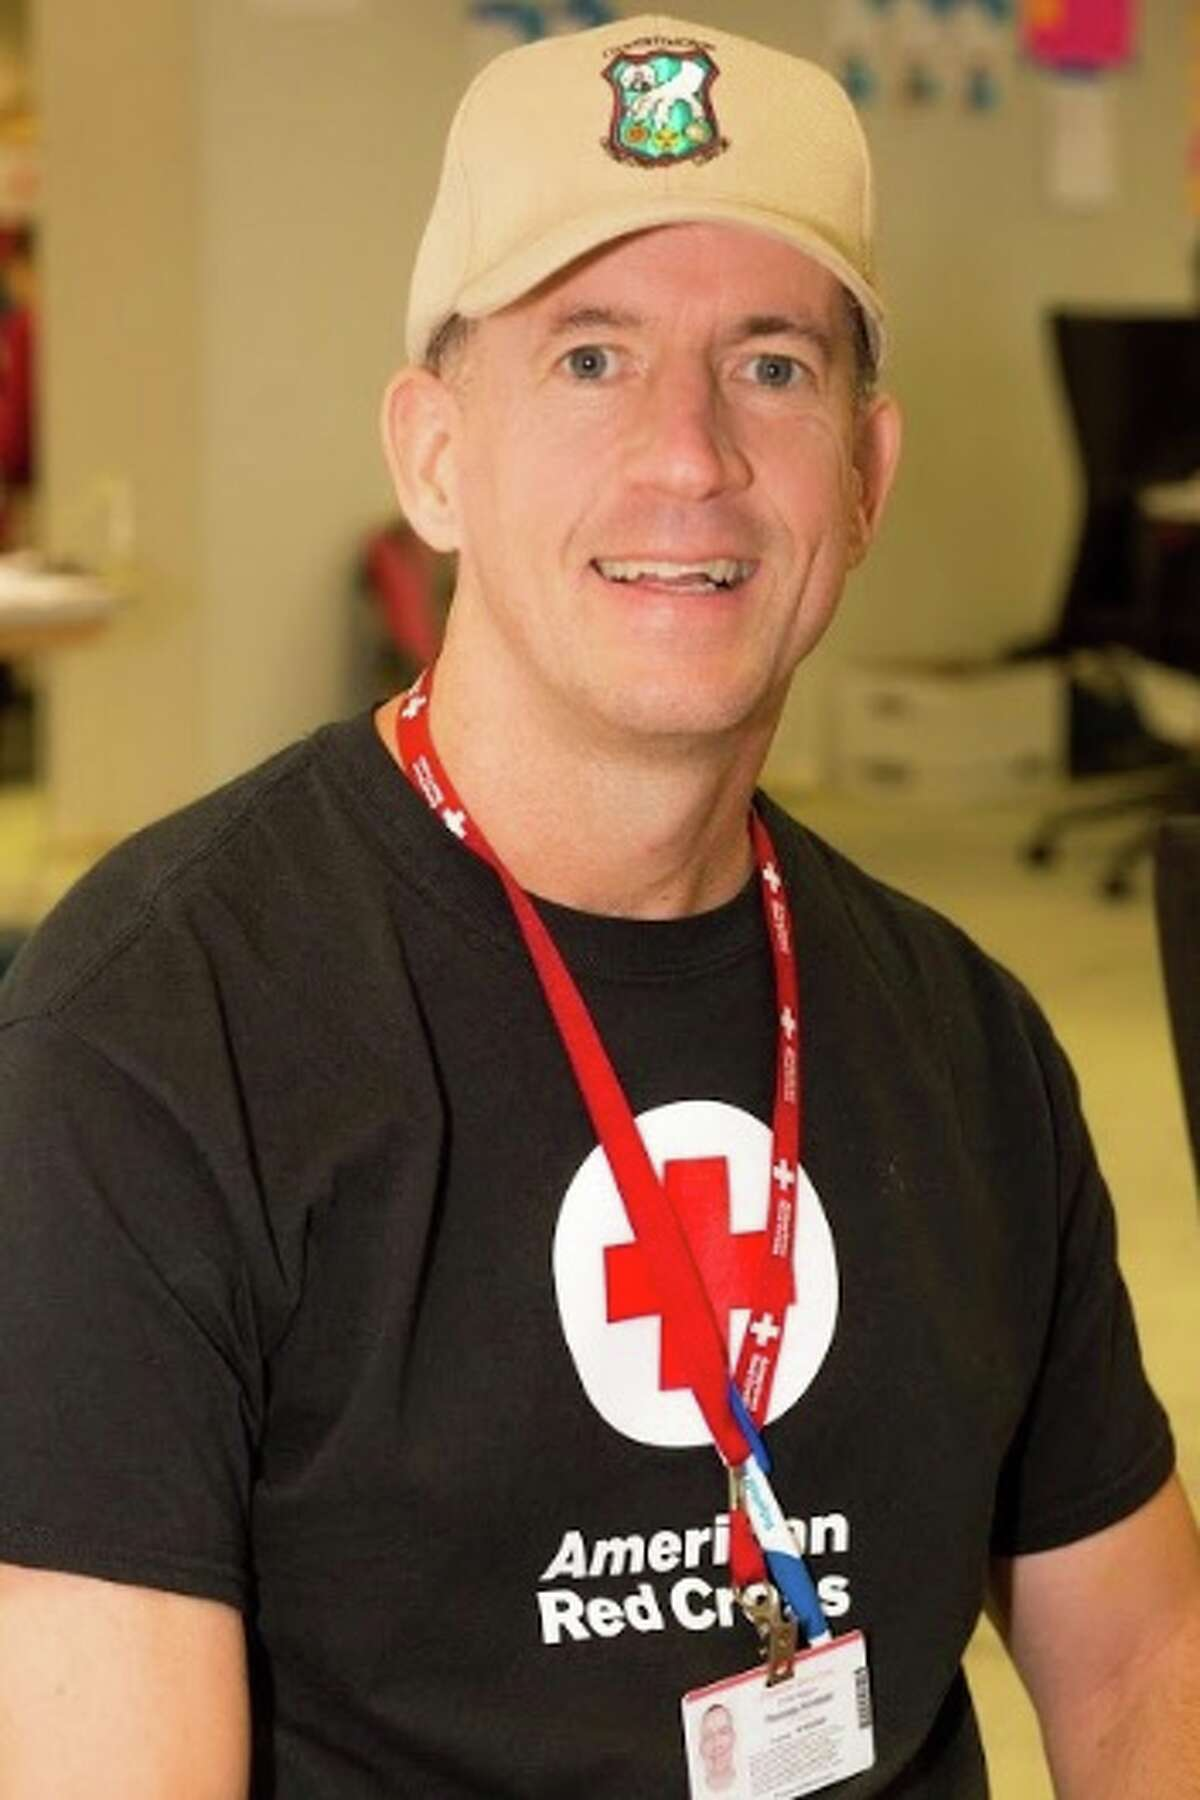 Ridgefield resident Thomas Kimball, who recently returned from assisting Hurricane Florence victims with the American Red Cross in Wilmington, N.C. - Thomas Kimball photo